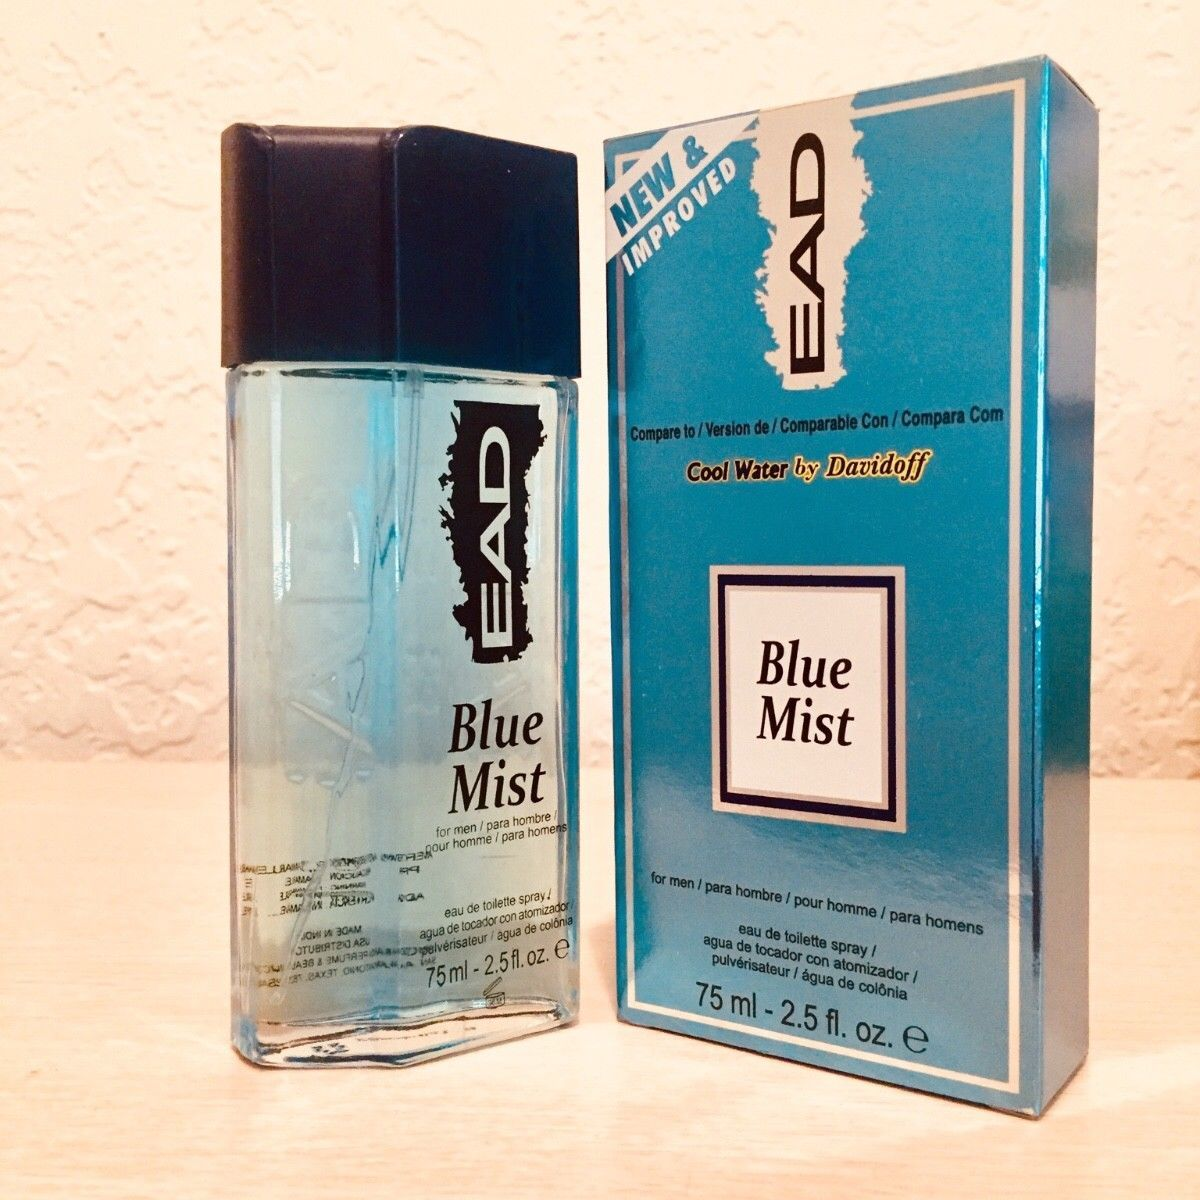 2e2f81558387d BLUE MIST MENS PERFUME BY EAD COMPARE TO COOL WATER BY DAVIDOFF 2.5 FL OZ  (NEW)